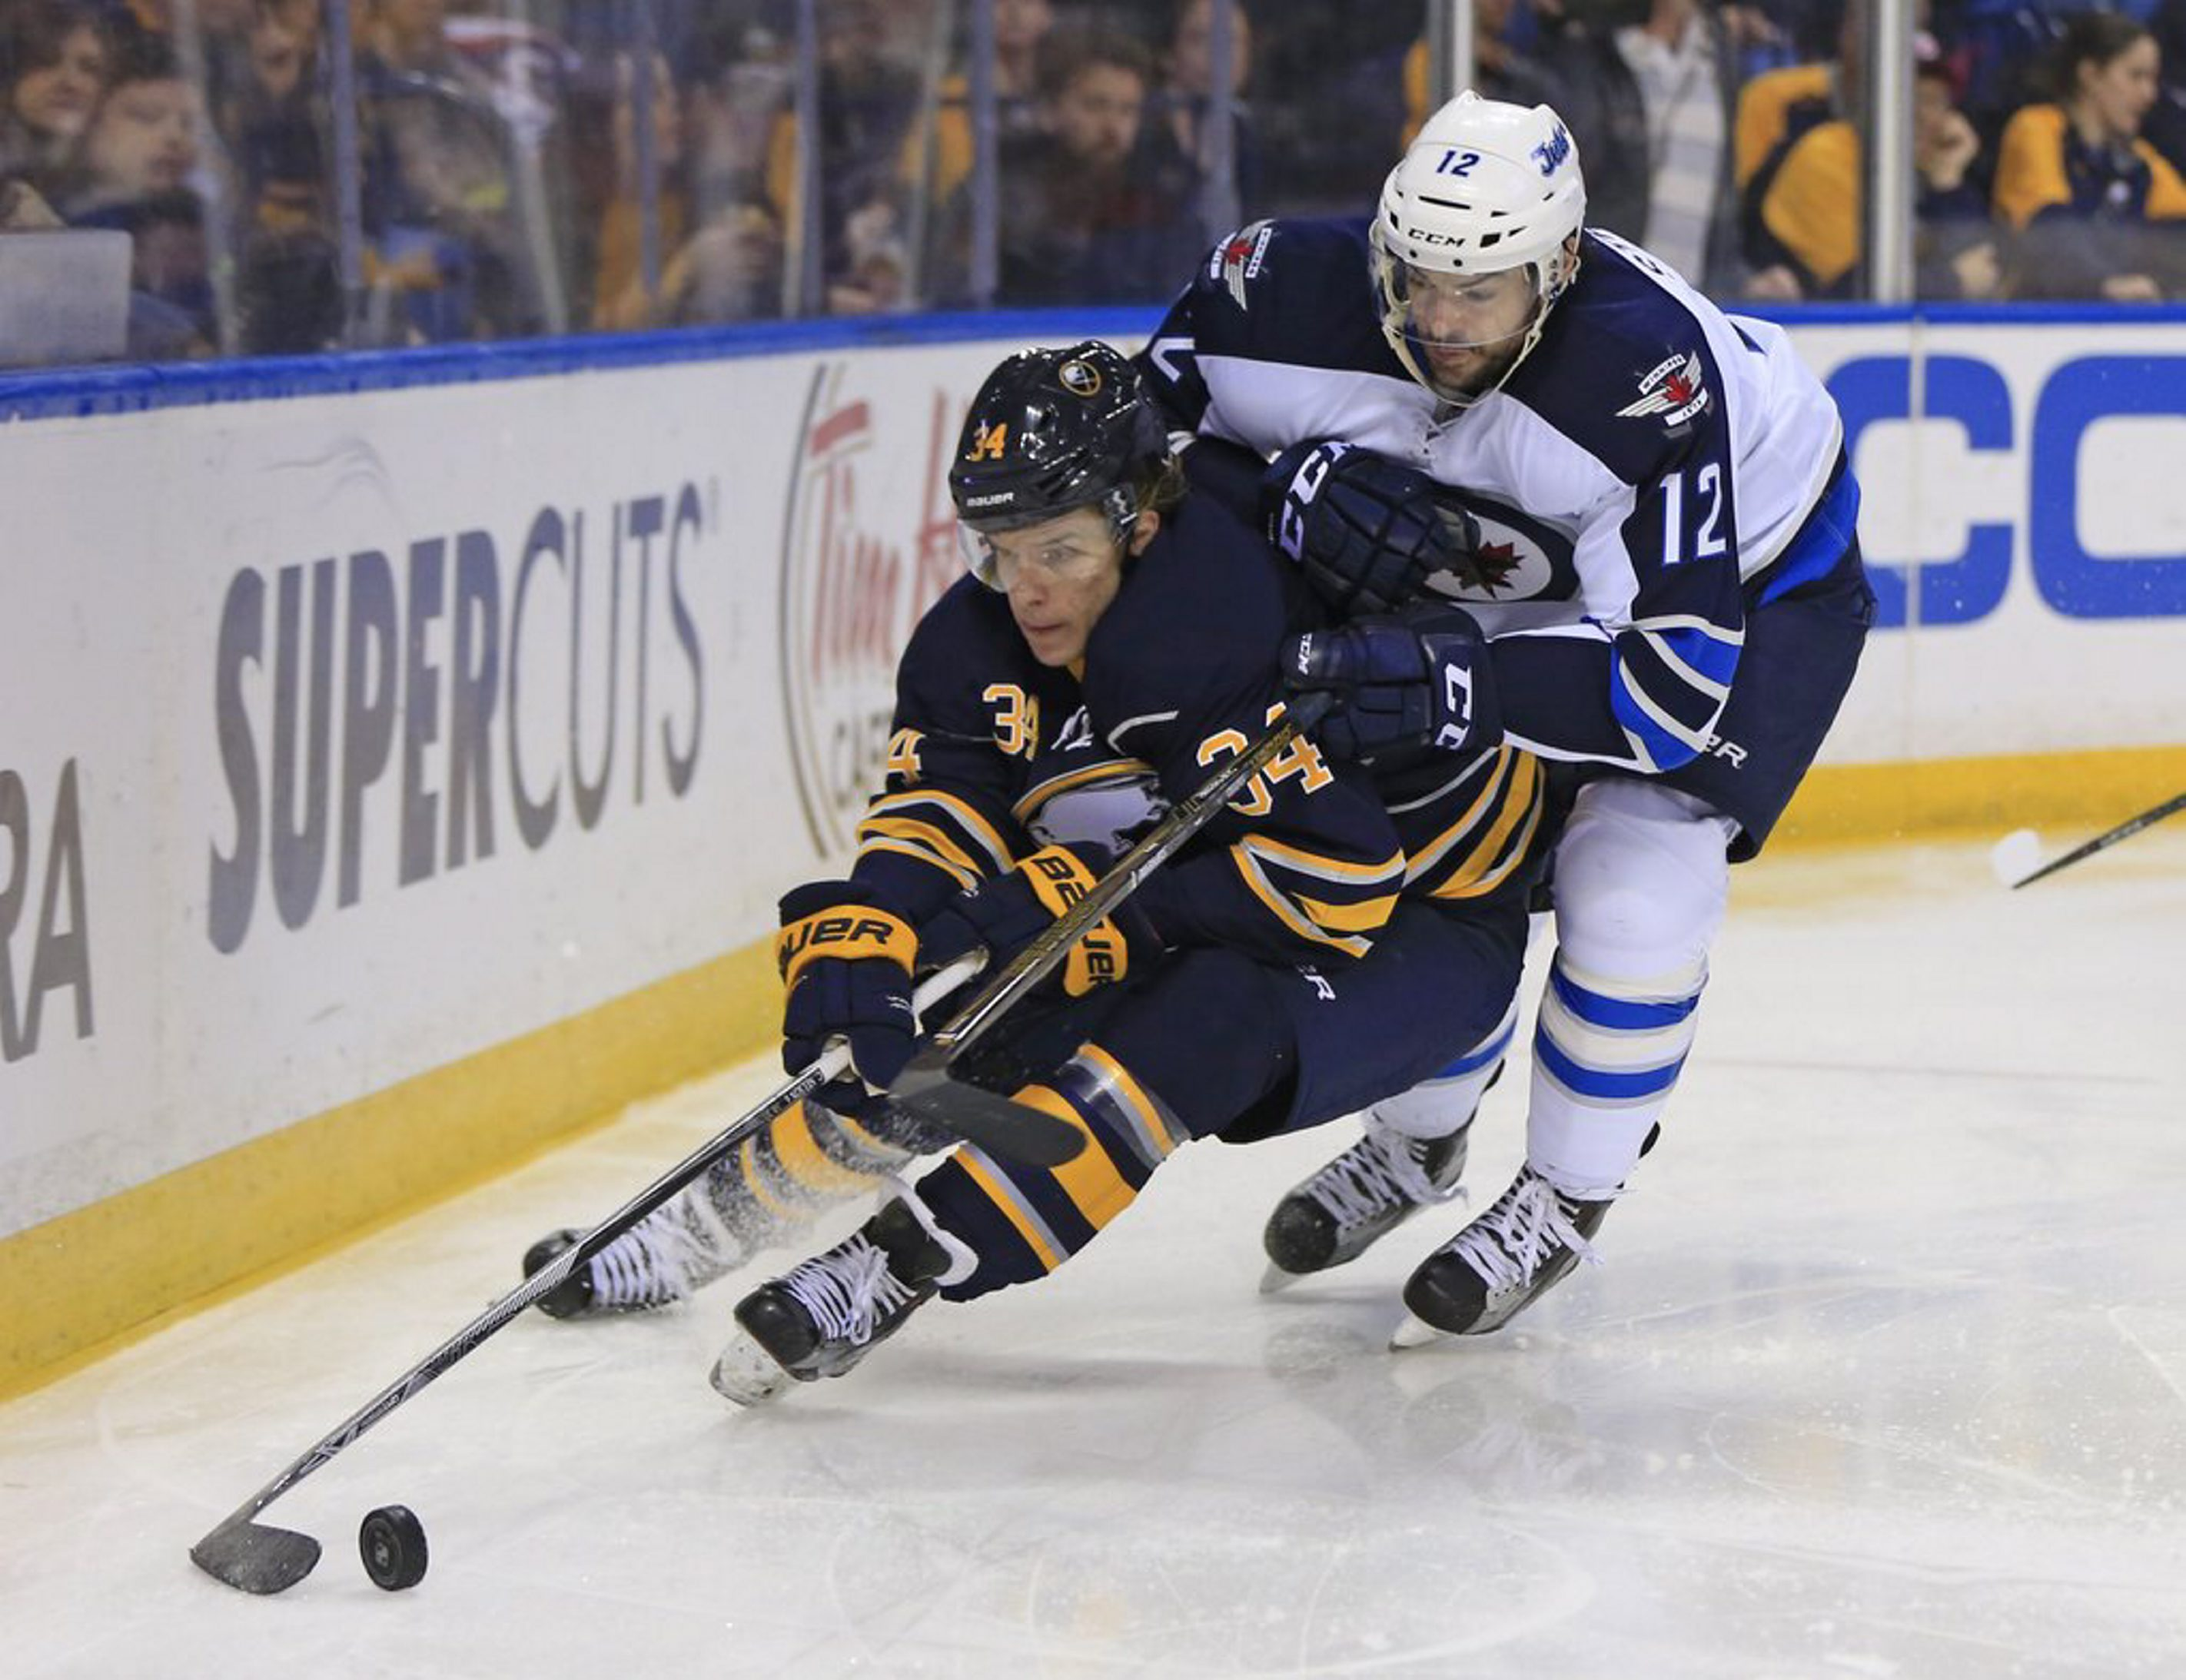 Casey Nelson earned his first recall to the Sabres this season. (Harry Scull Jr./Buffalo News file photo)